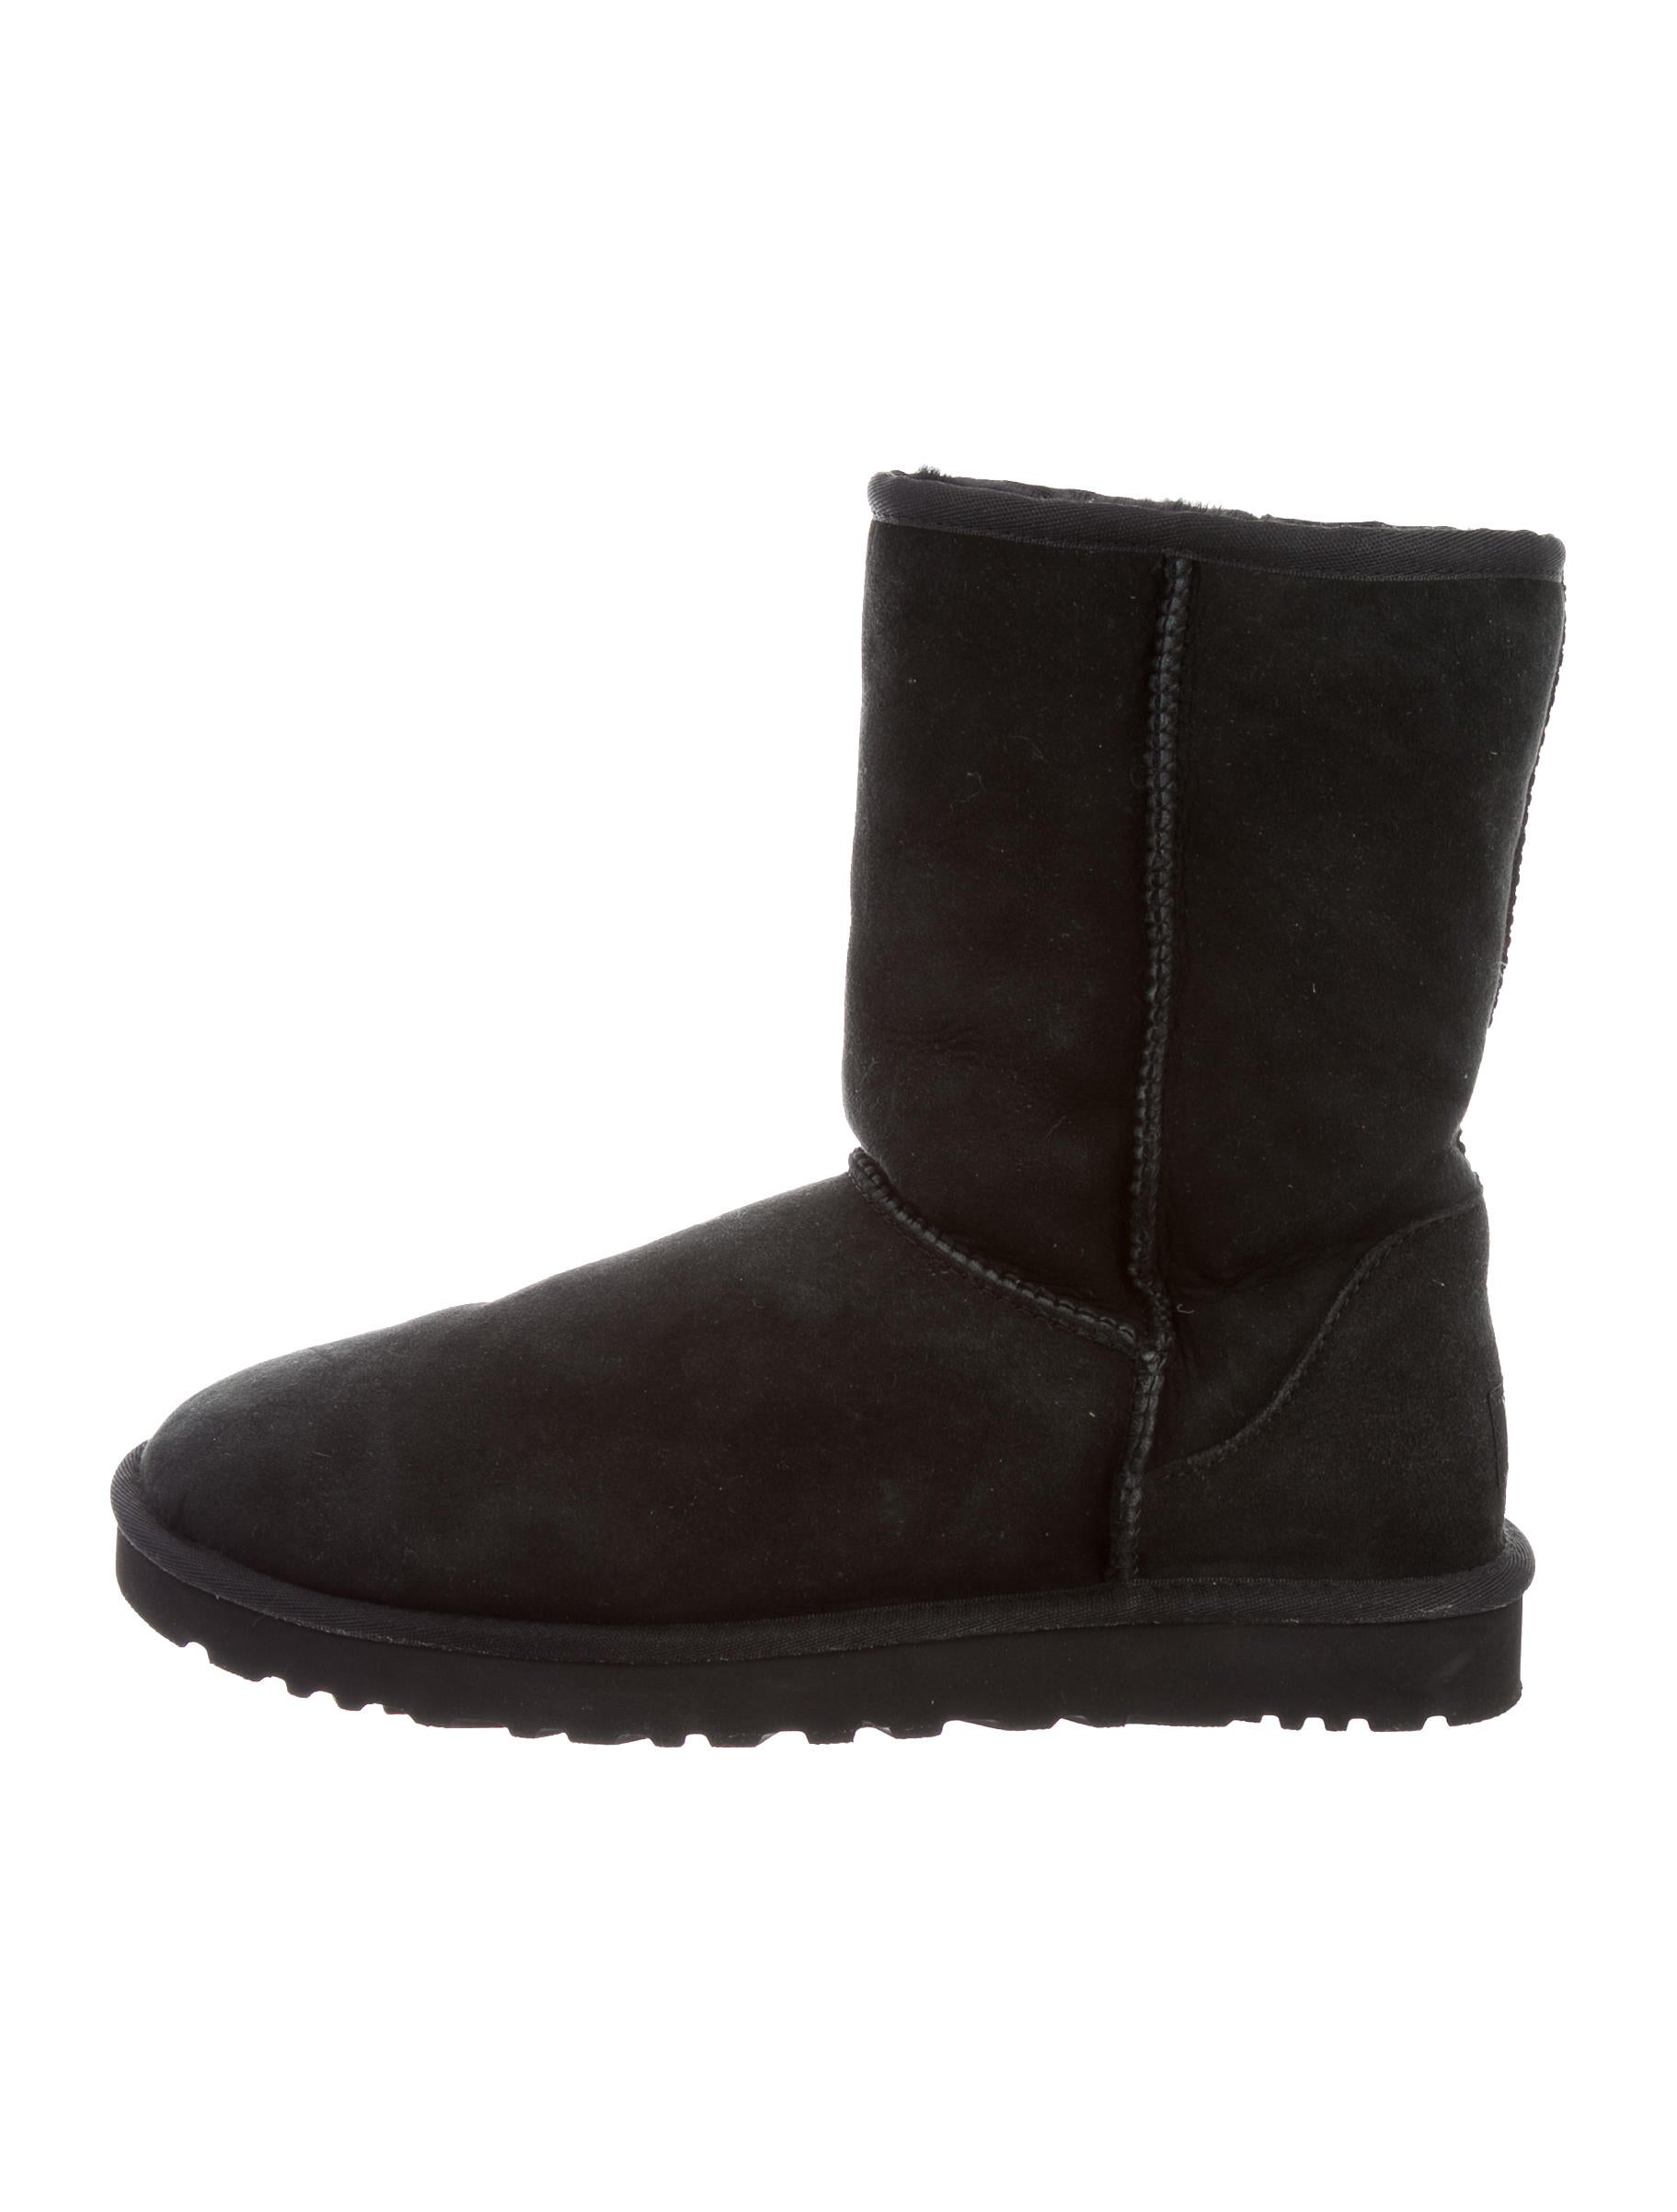 ugg australia suede ankle boots shoes wuugg21158 the